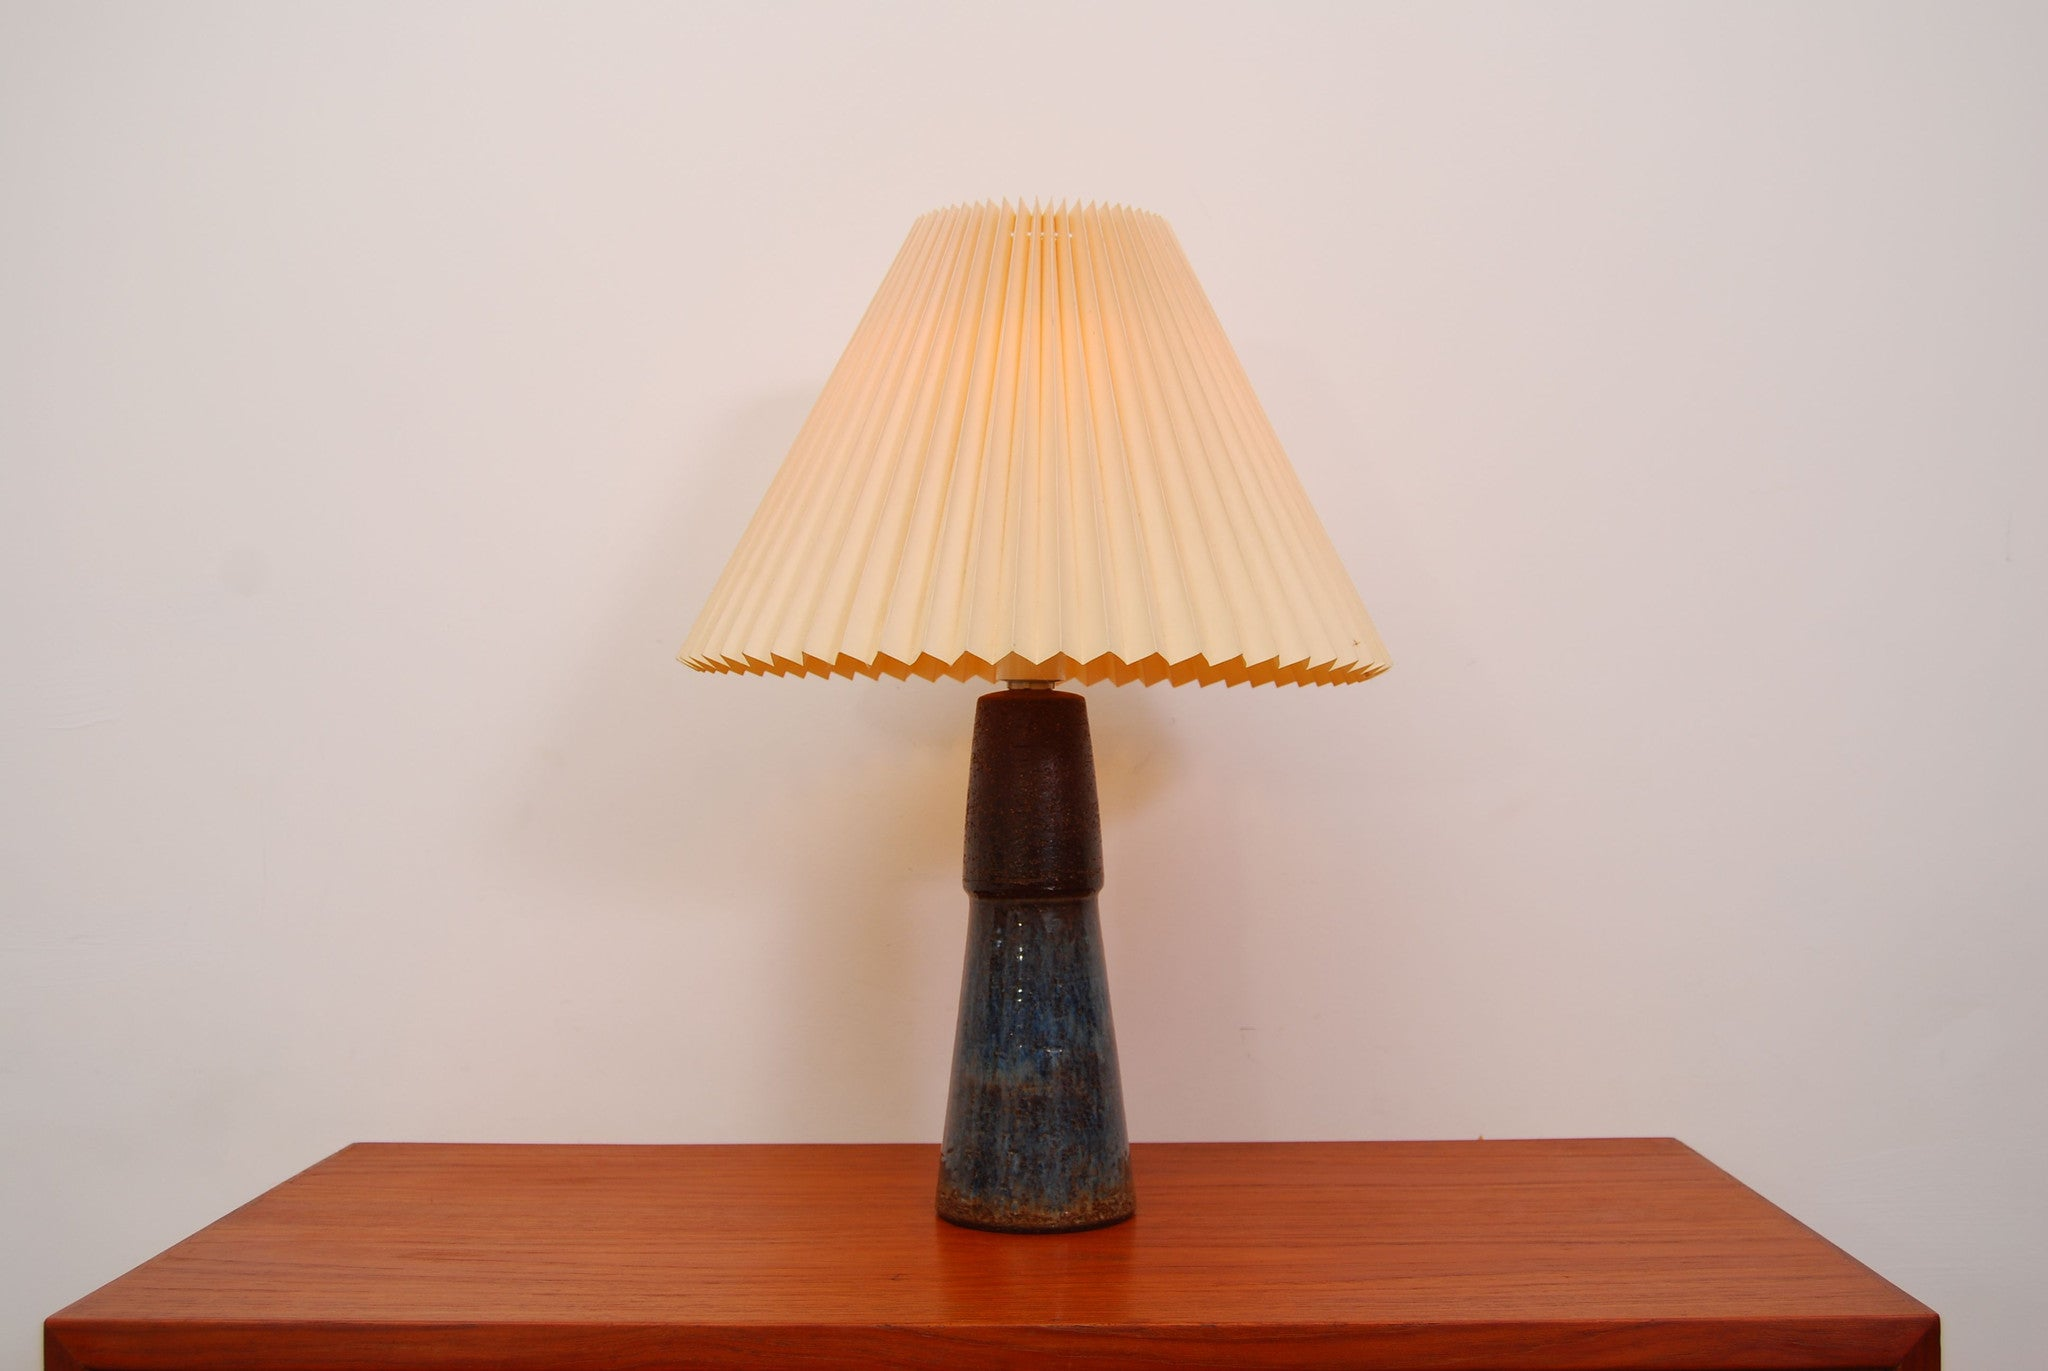 Ceramic table lamp by Soholm Stentoj